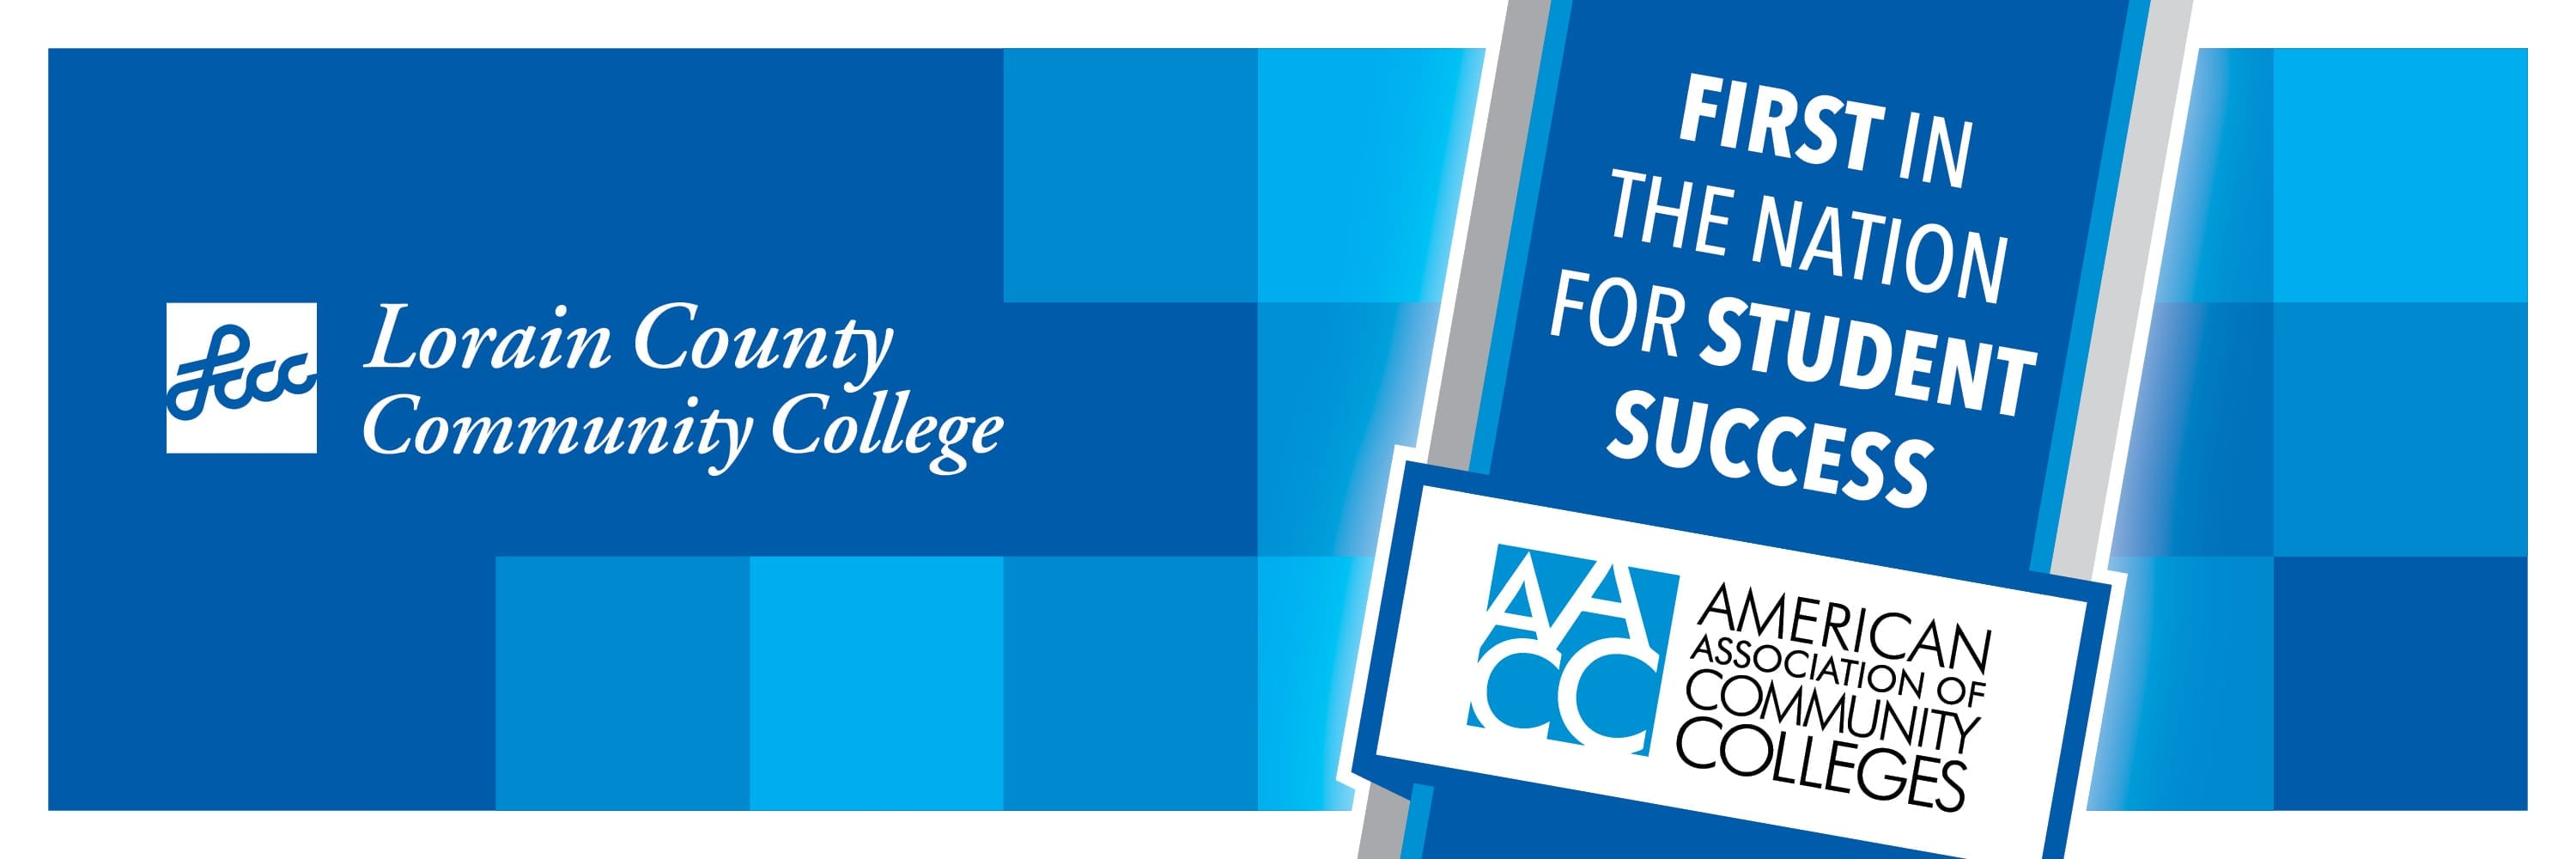 AACC Names LCCC the top community college in the nation for student success